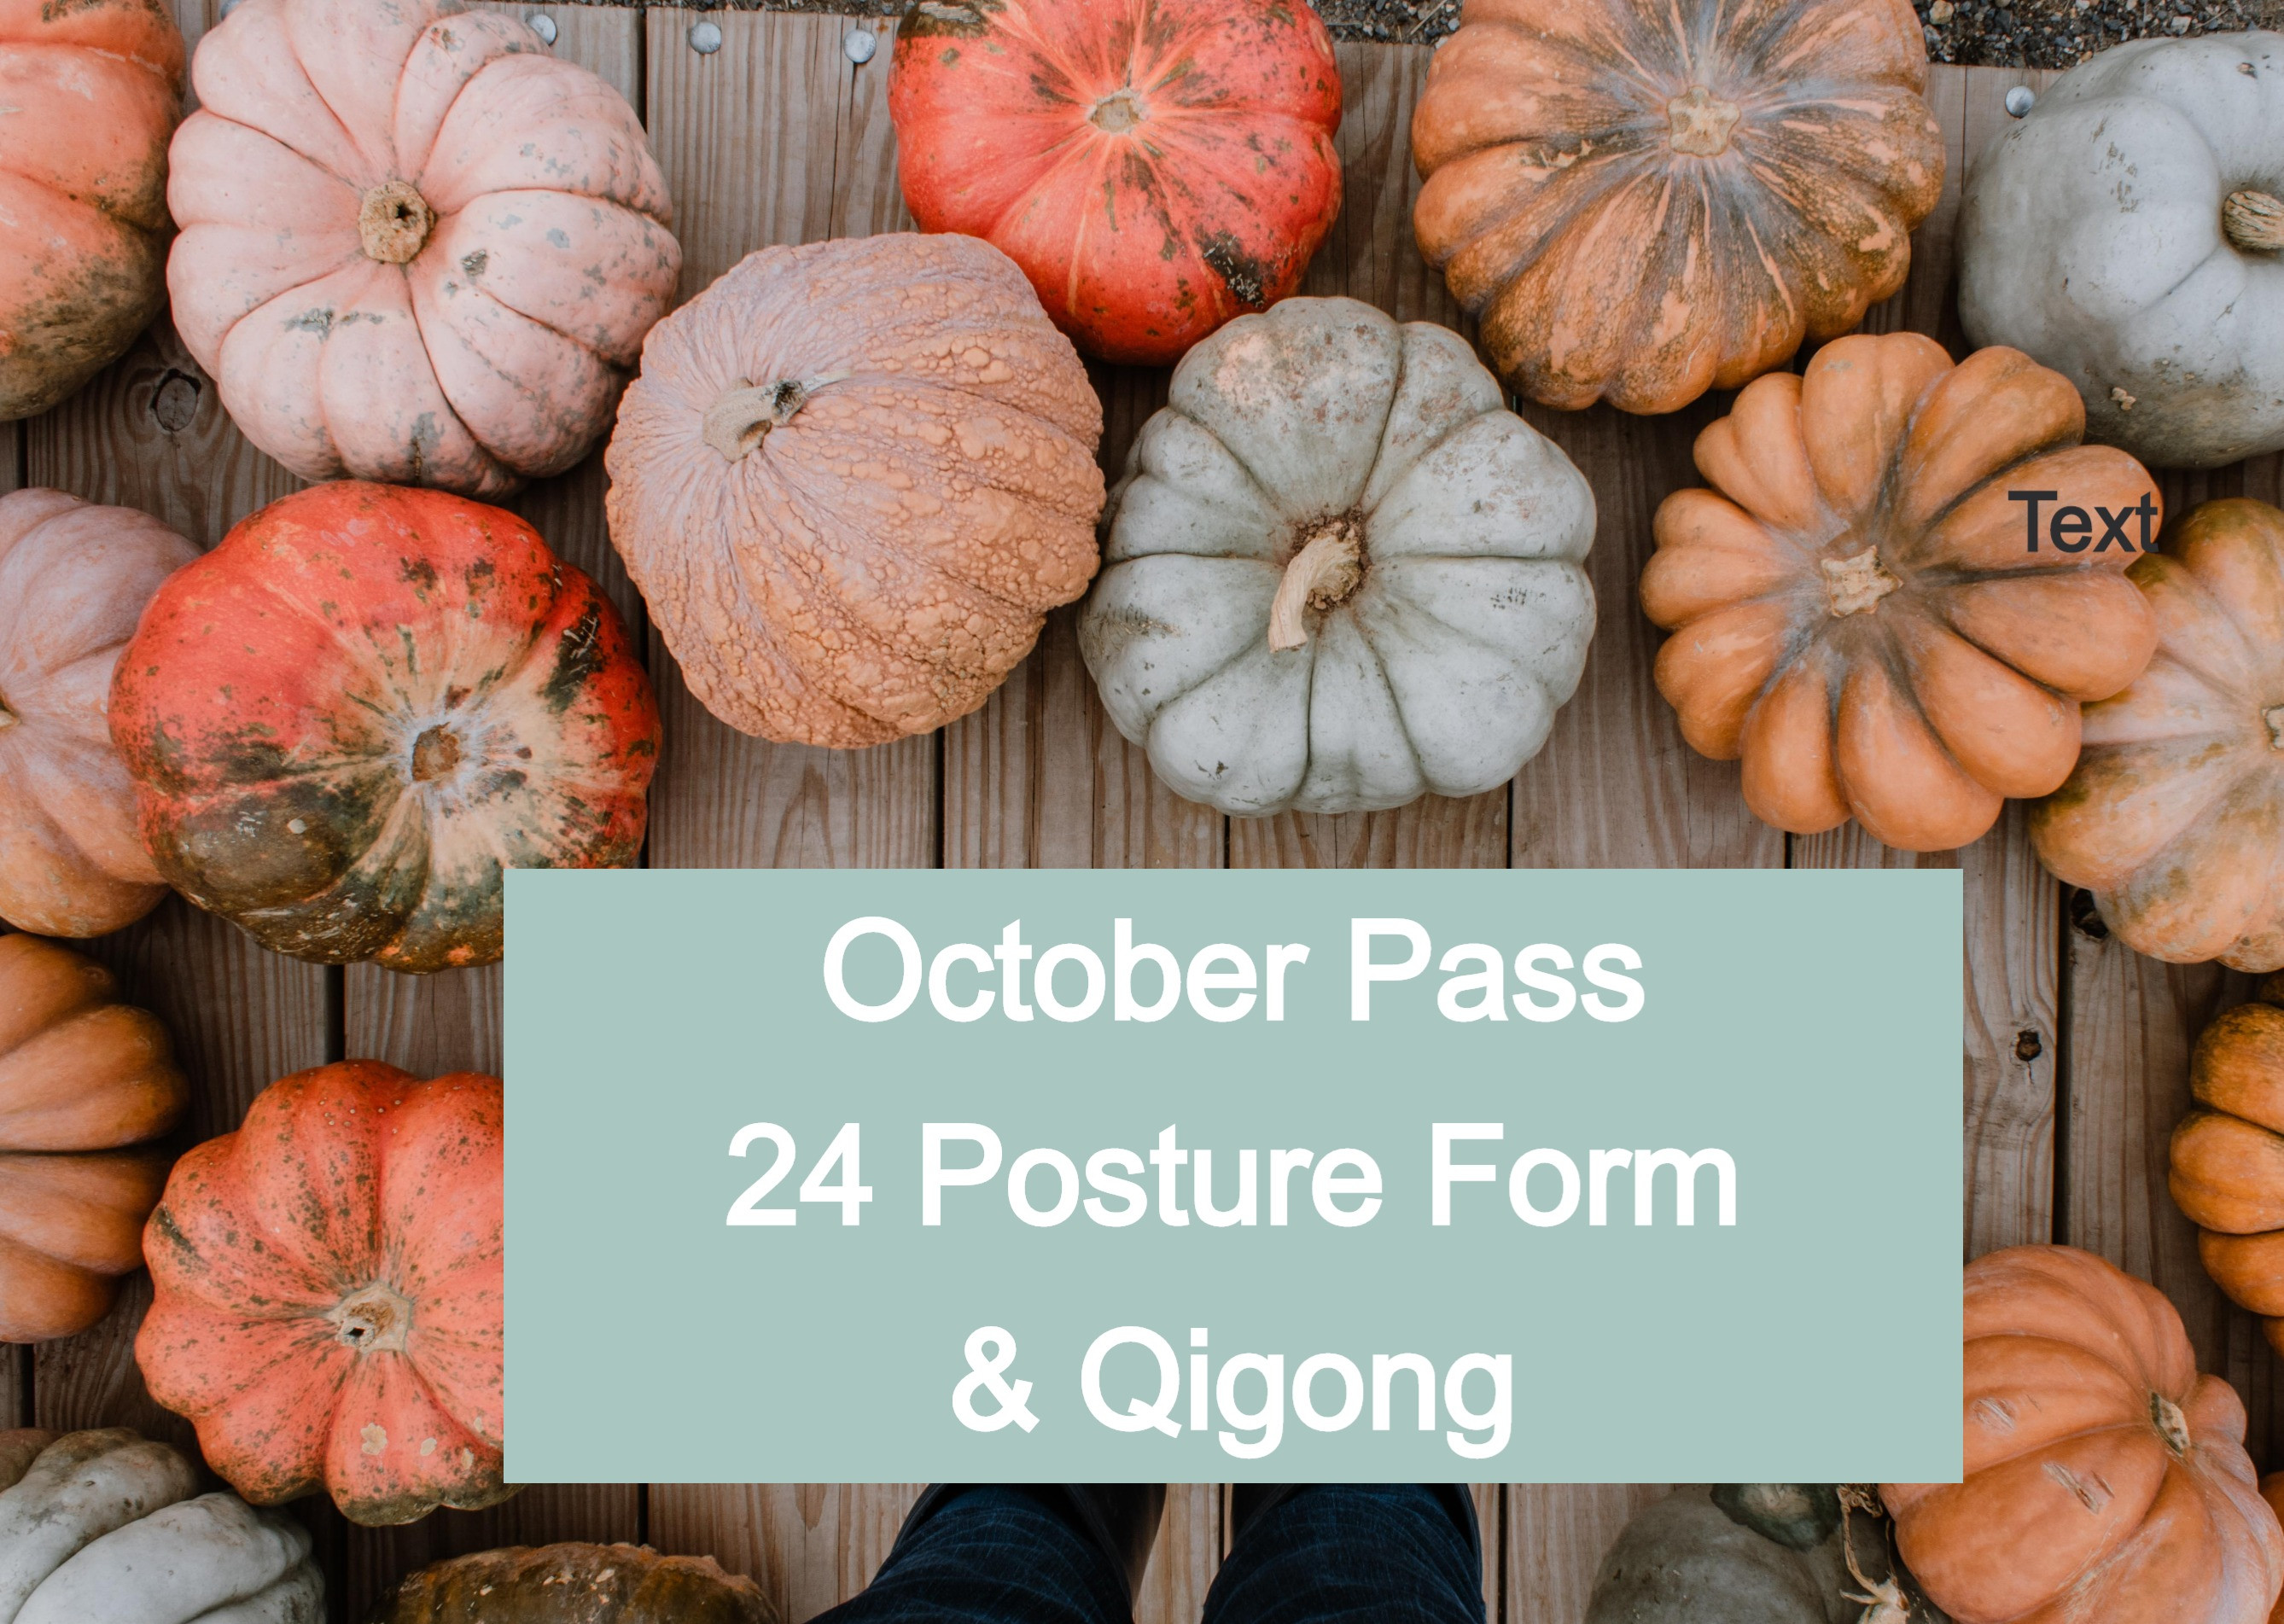 OCTOBER PASS for 24 Posture Classes